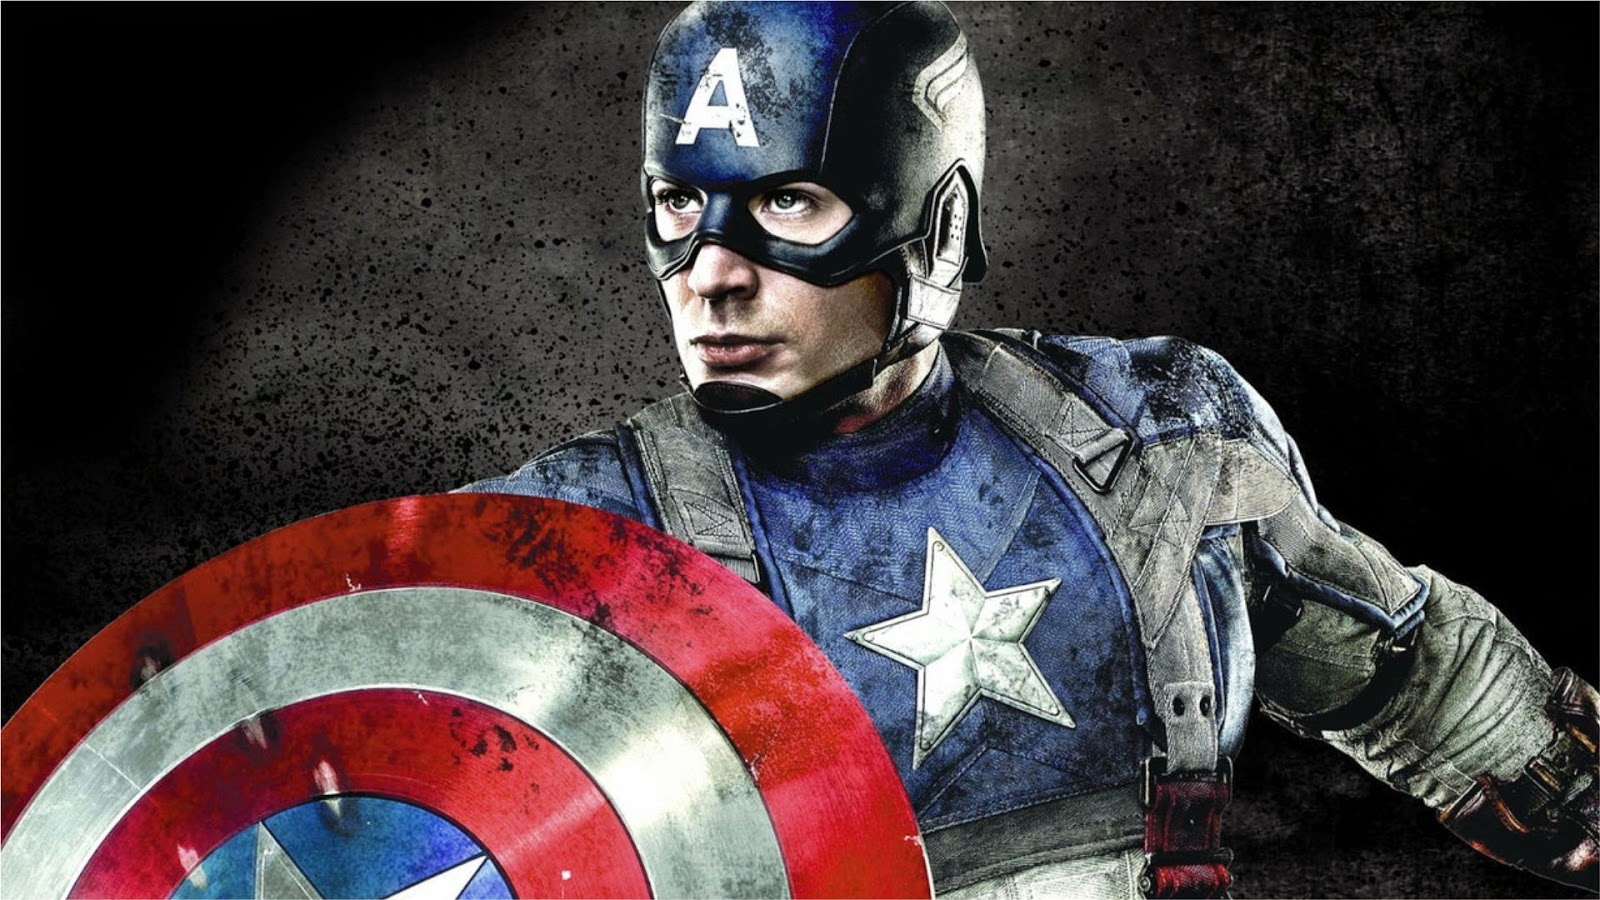 Captain america wallpaper hd - Captain america hd images download ...